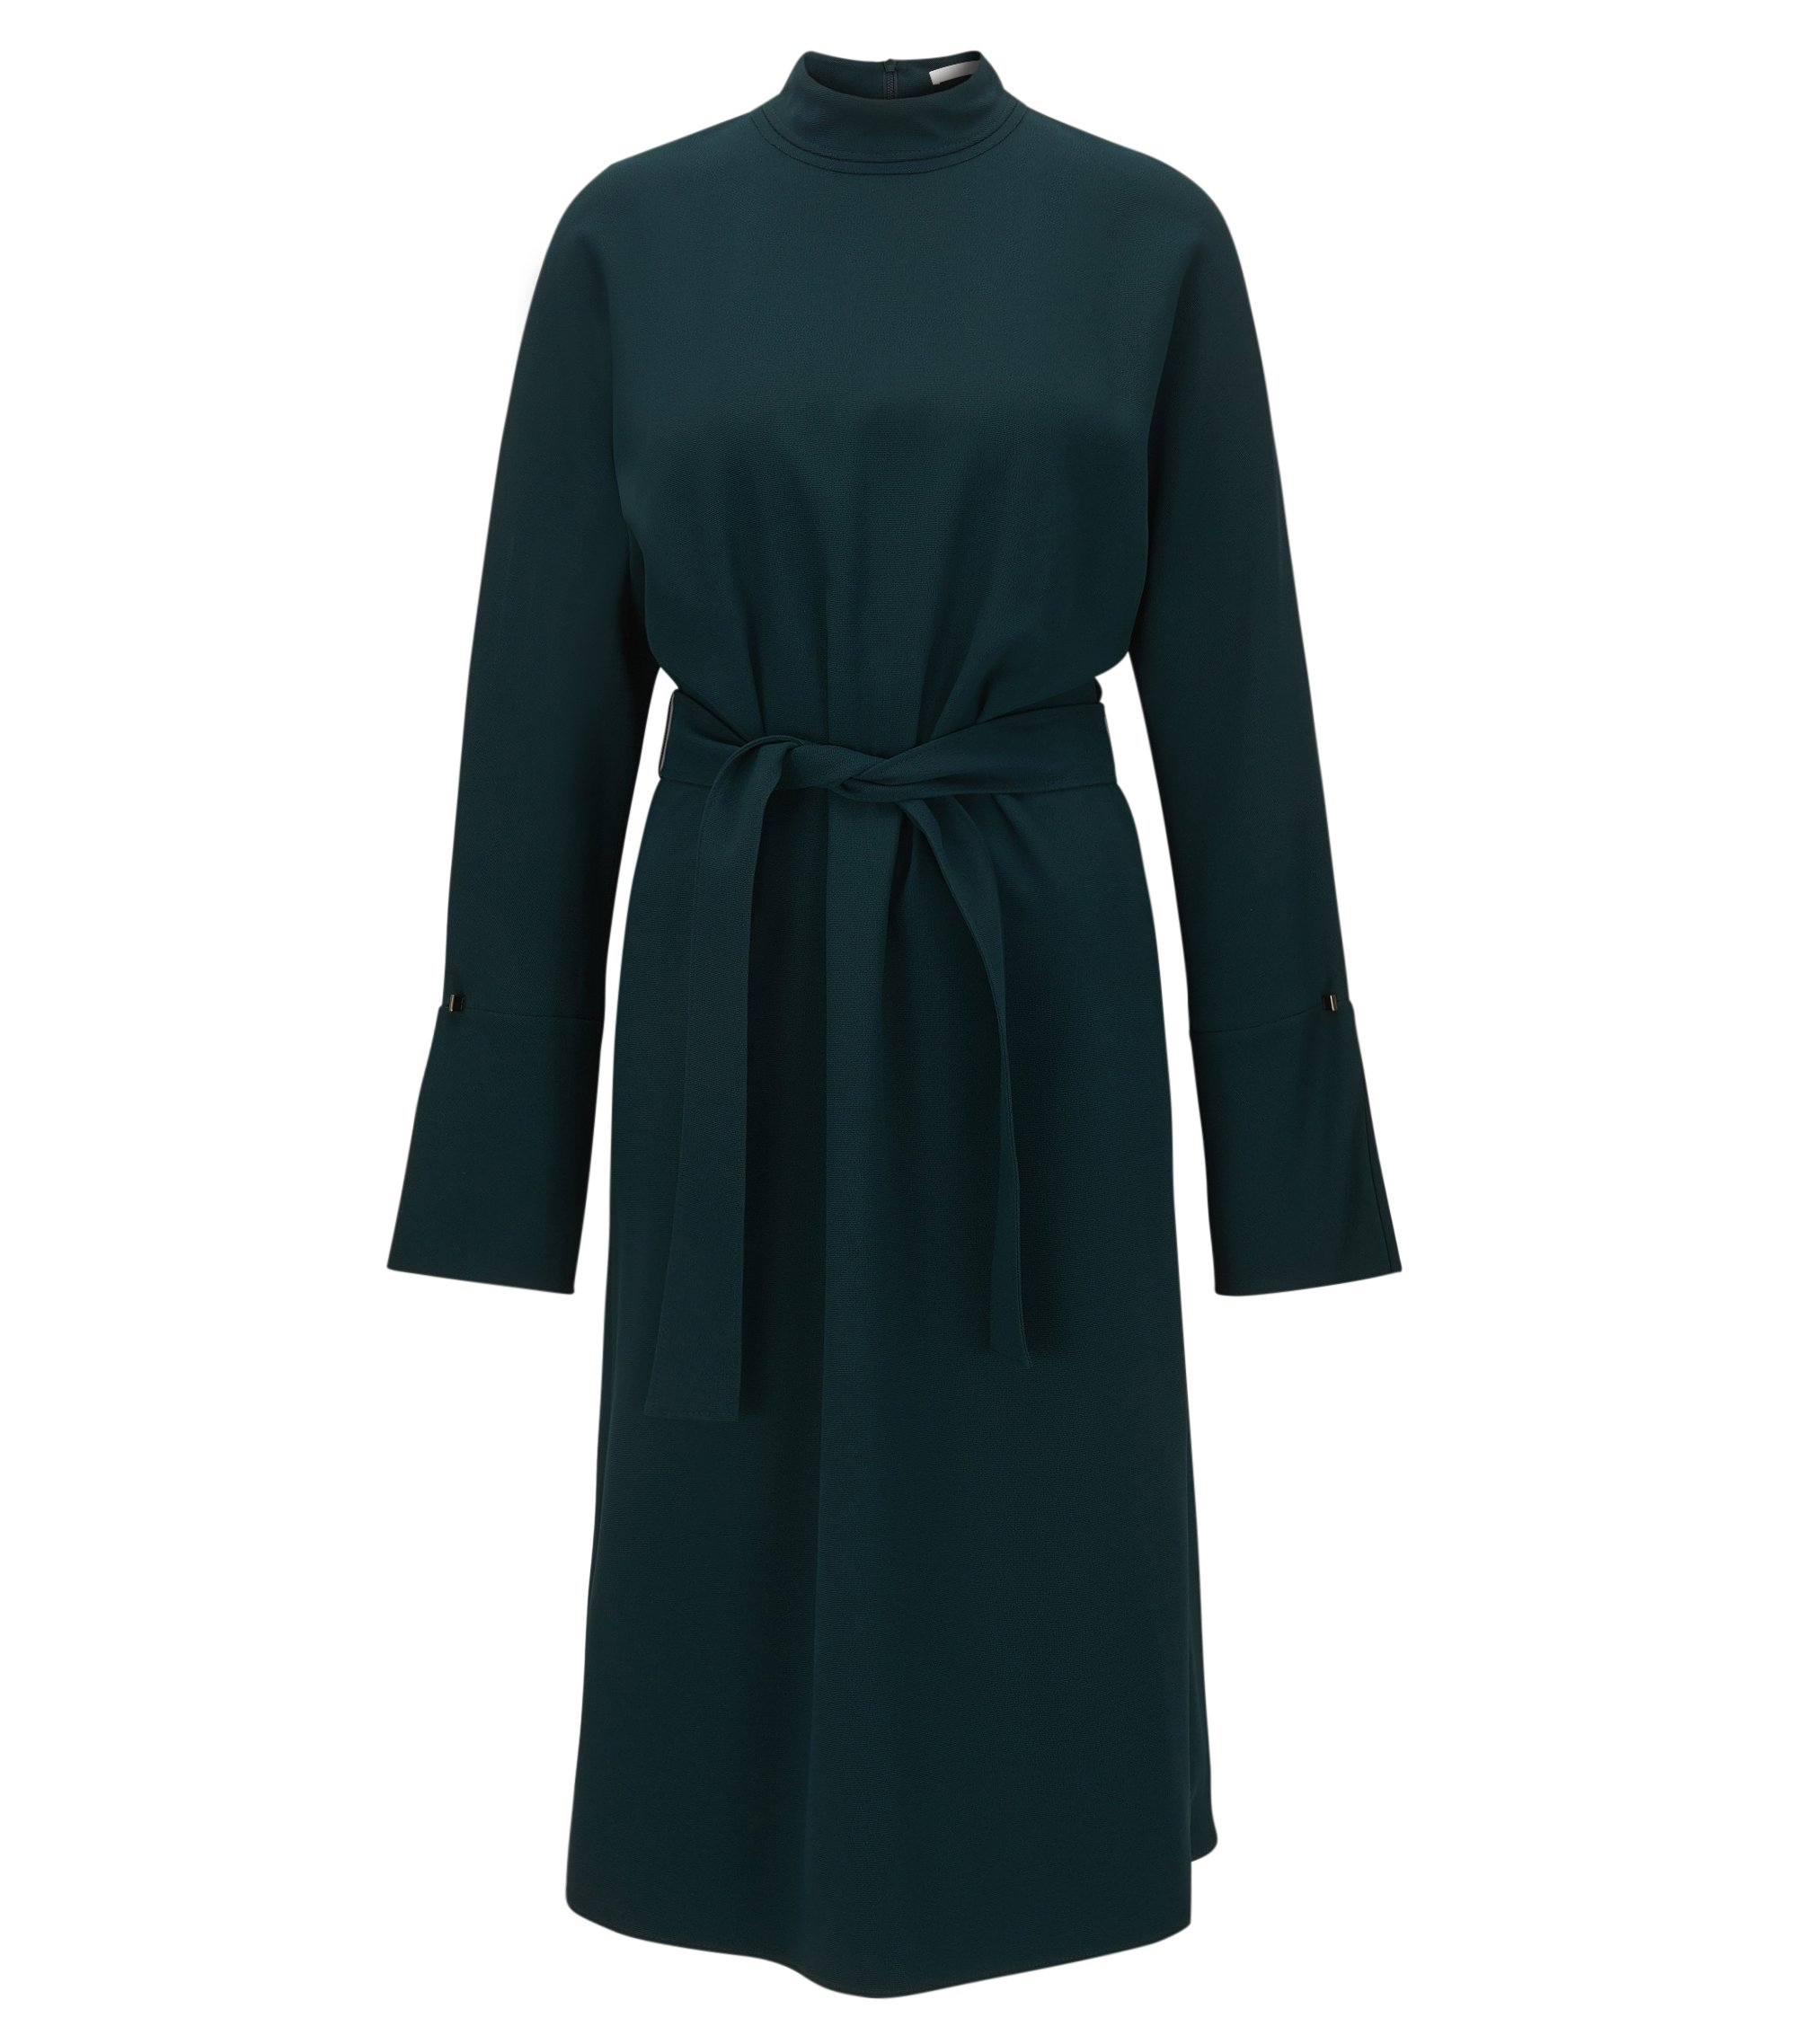 Long-sleeved turtle-neck dress in draped fabric, Dark Green